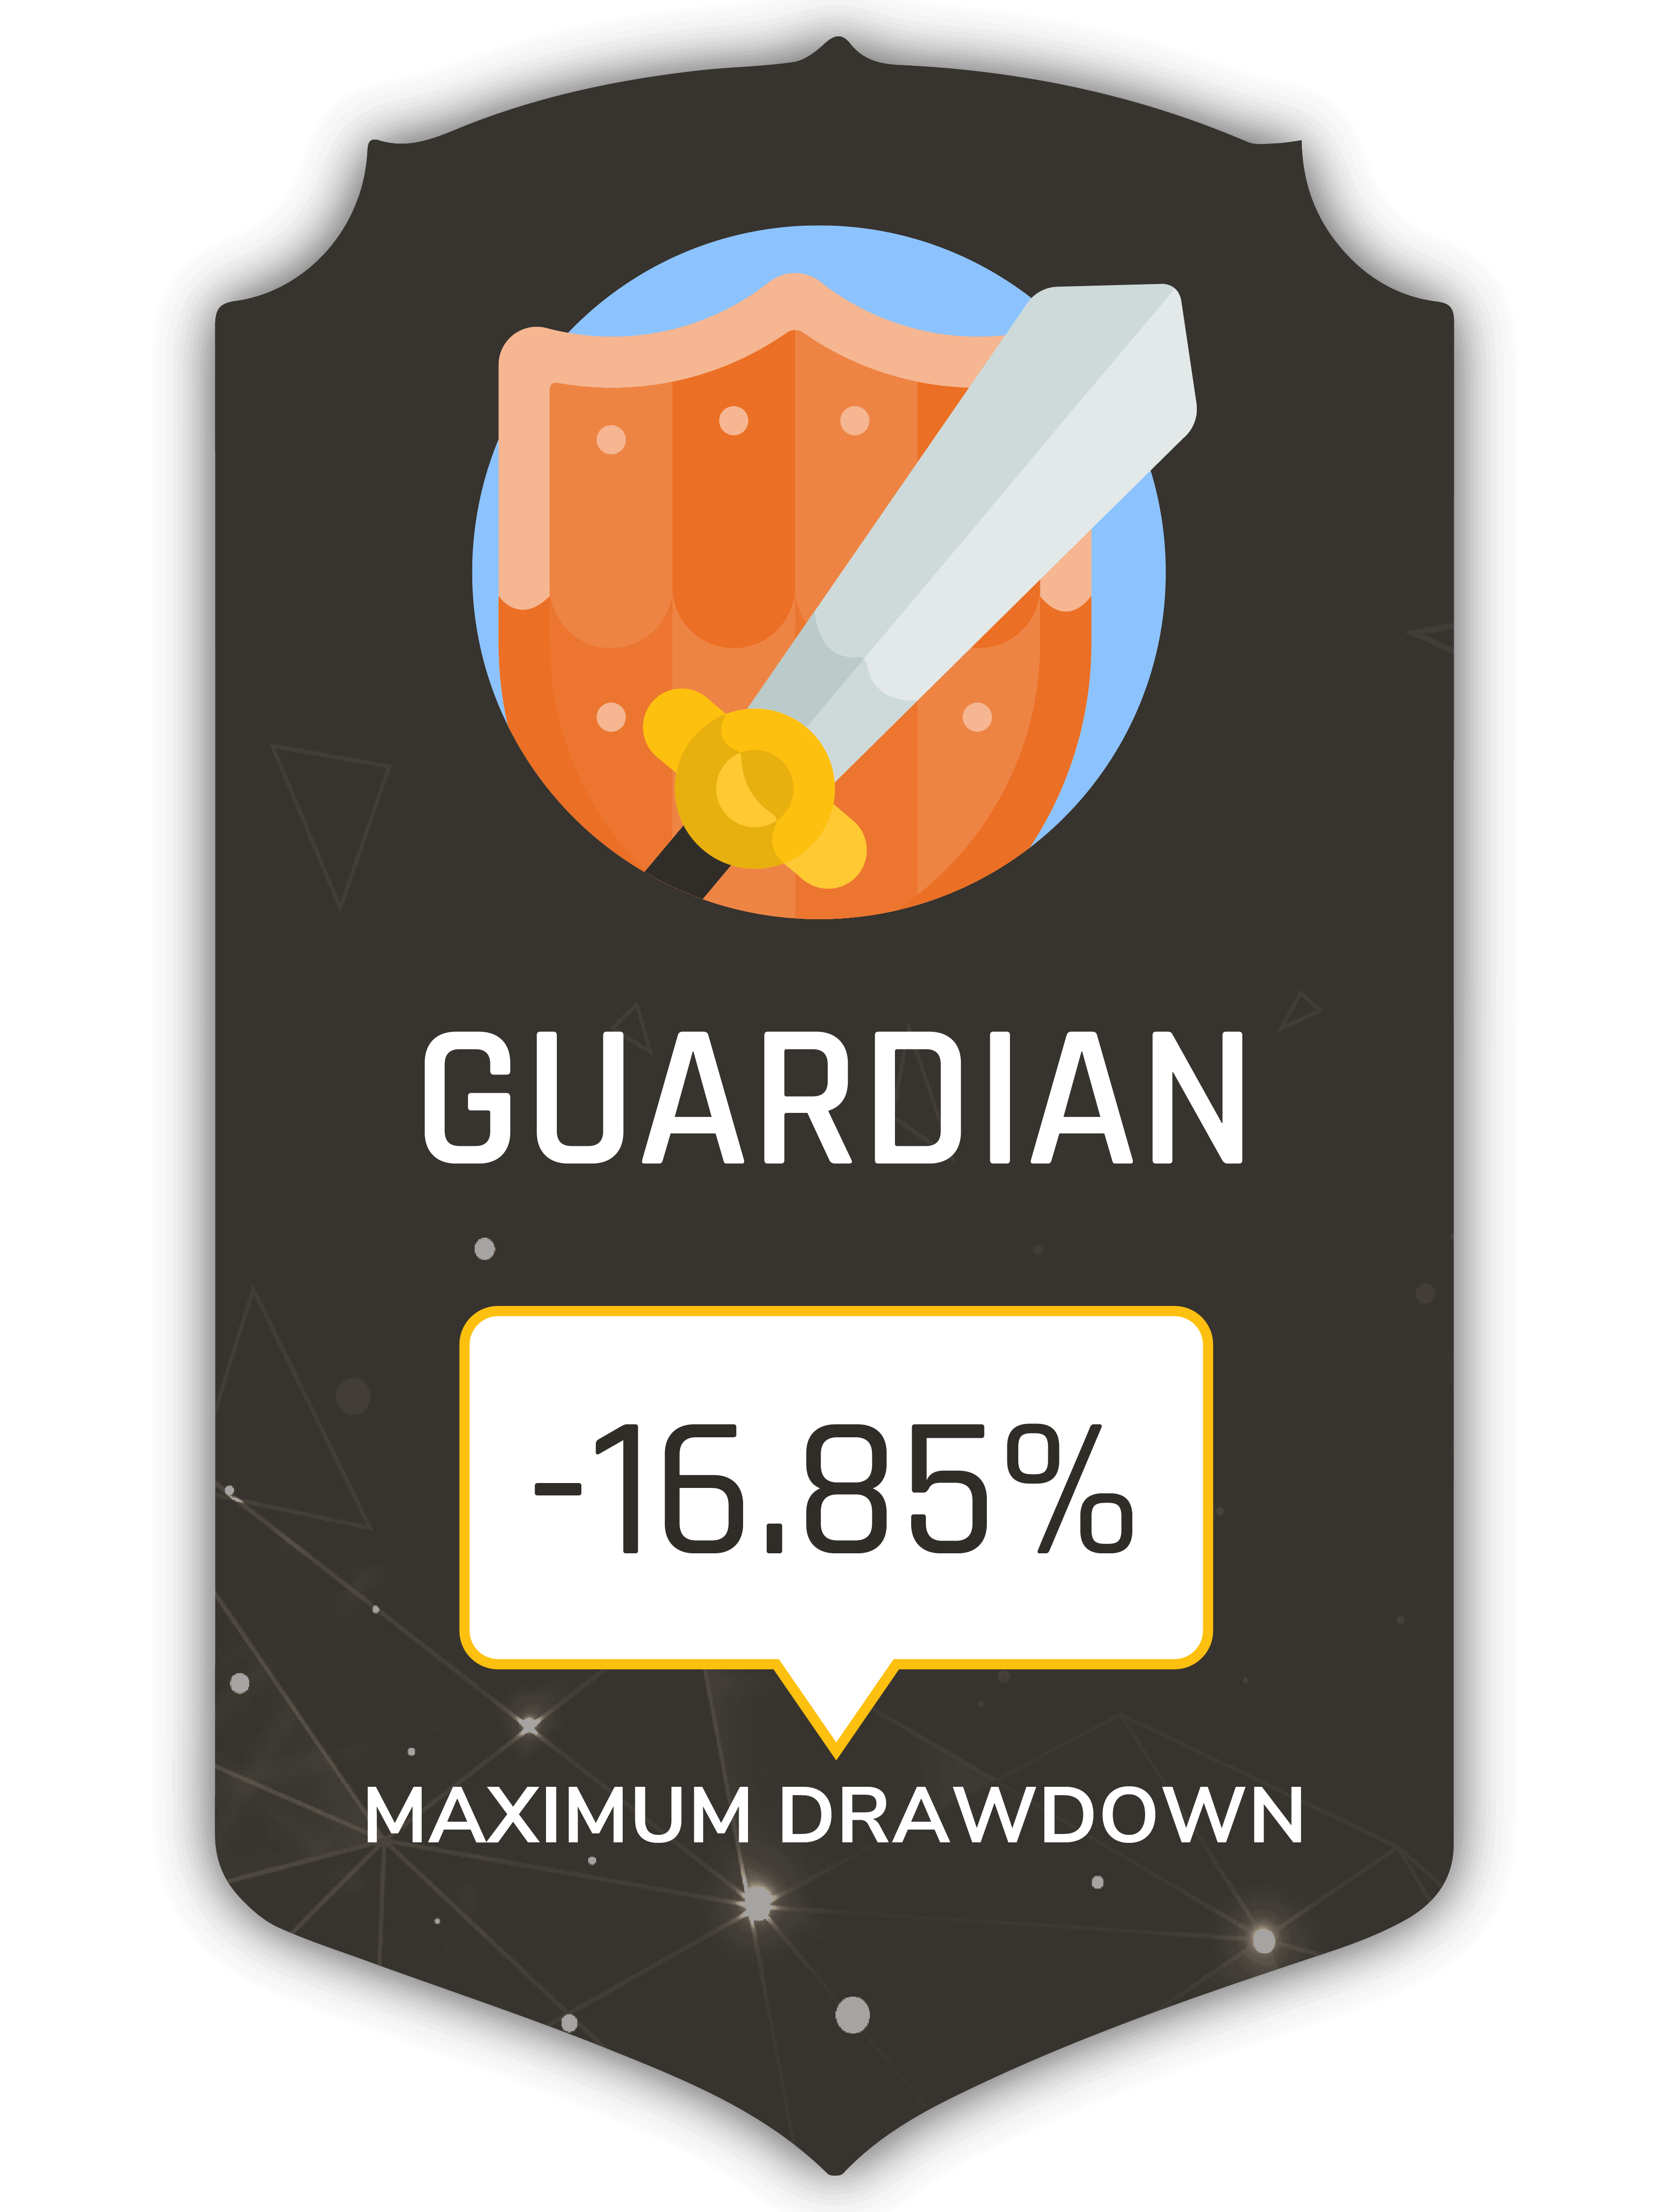 The badge of our Guardian strategy